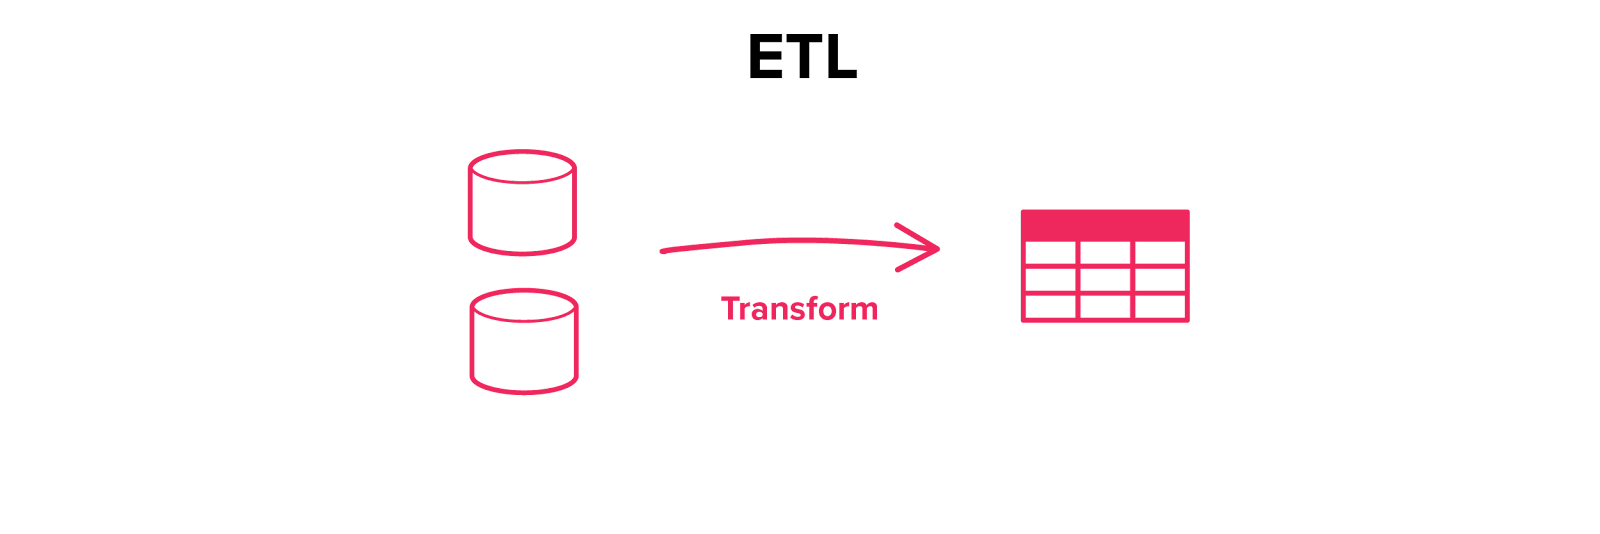 Extract-Transform-Load (ETL) Overview